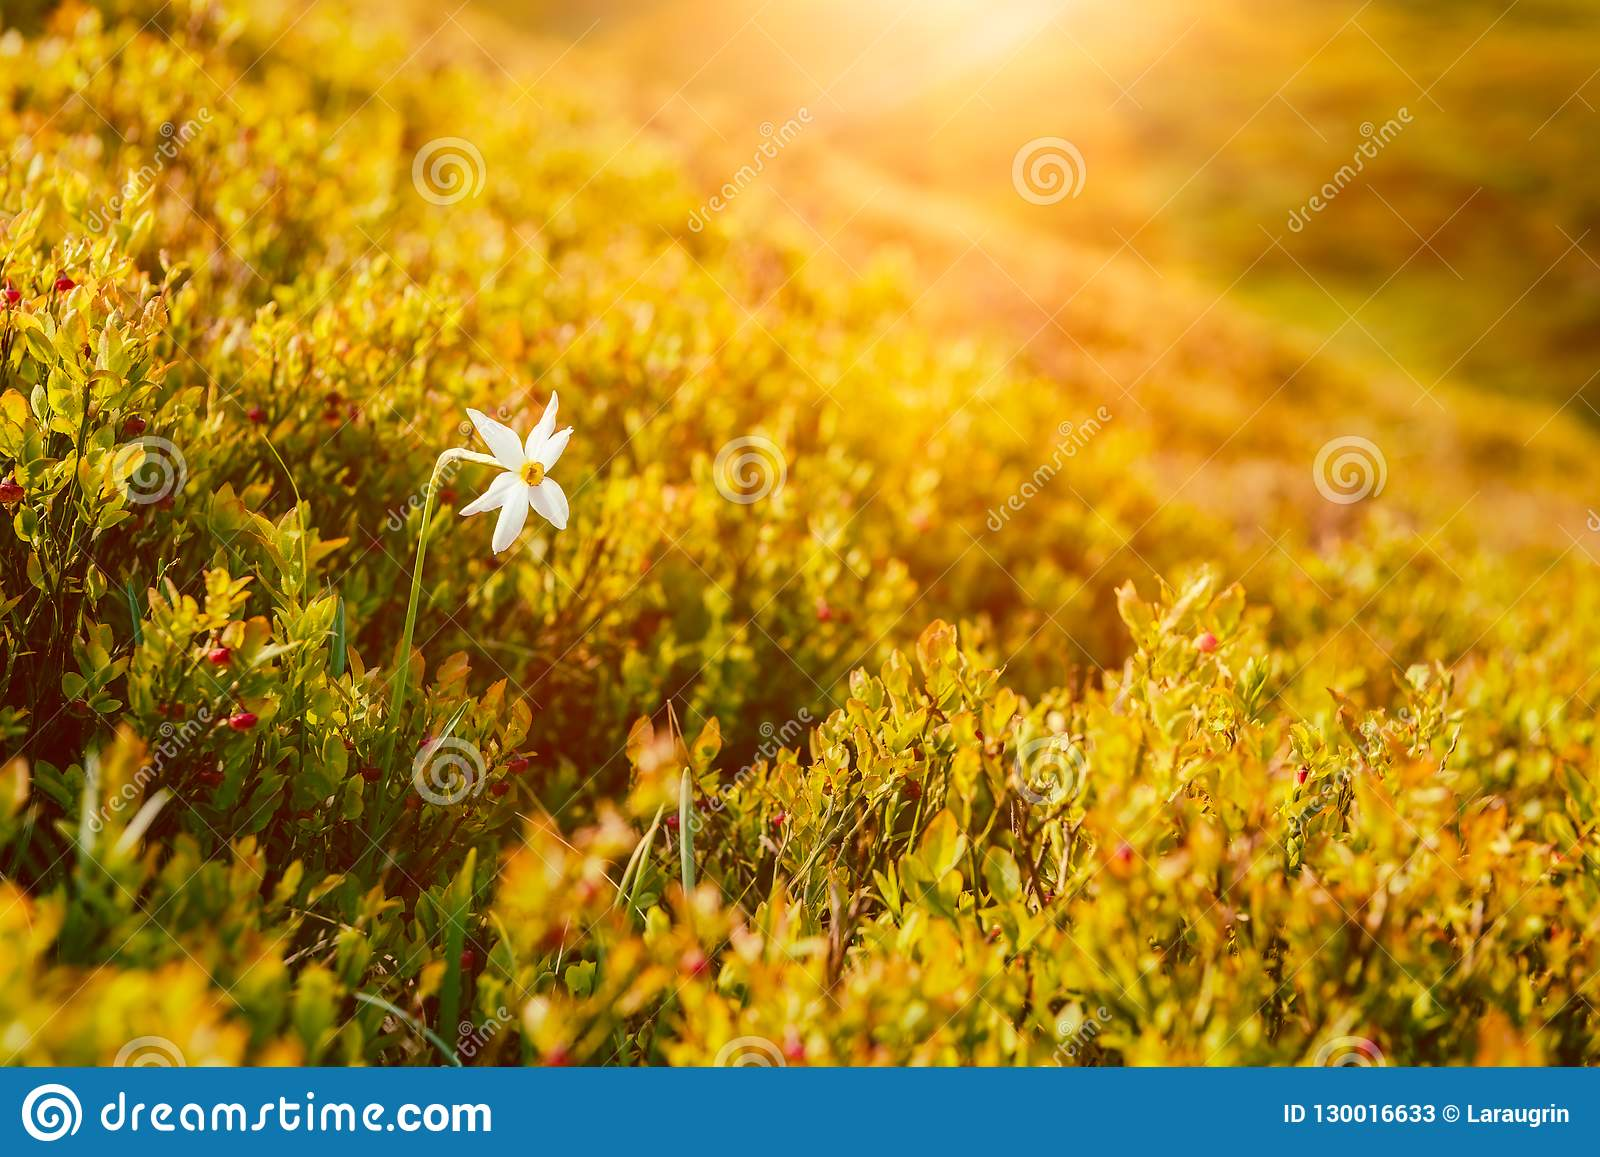 Sunny Mountain Slope With Single White Flower Of Wild Narcissus